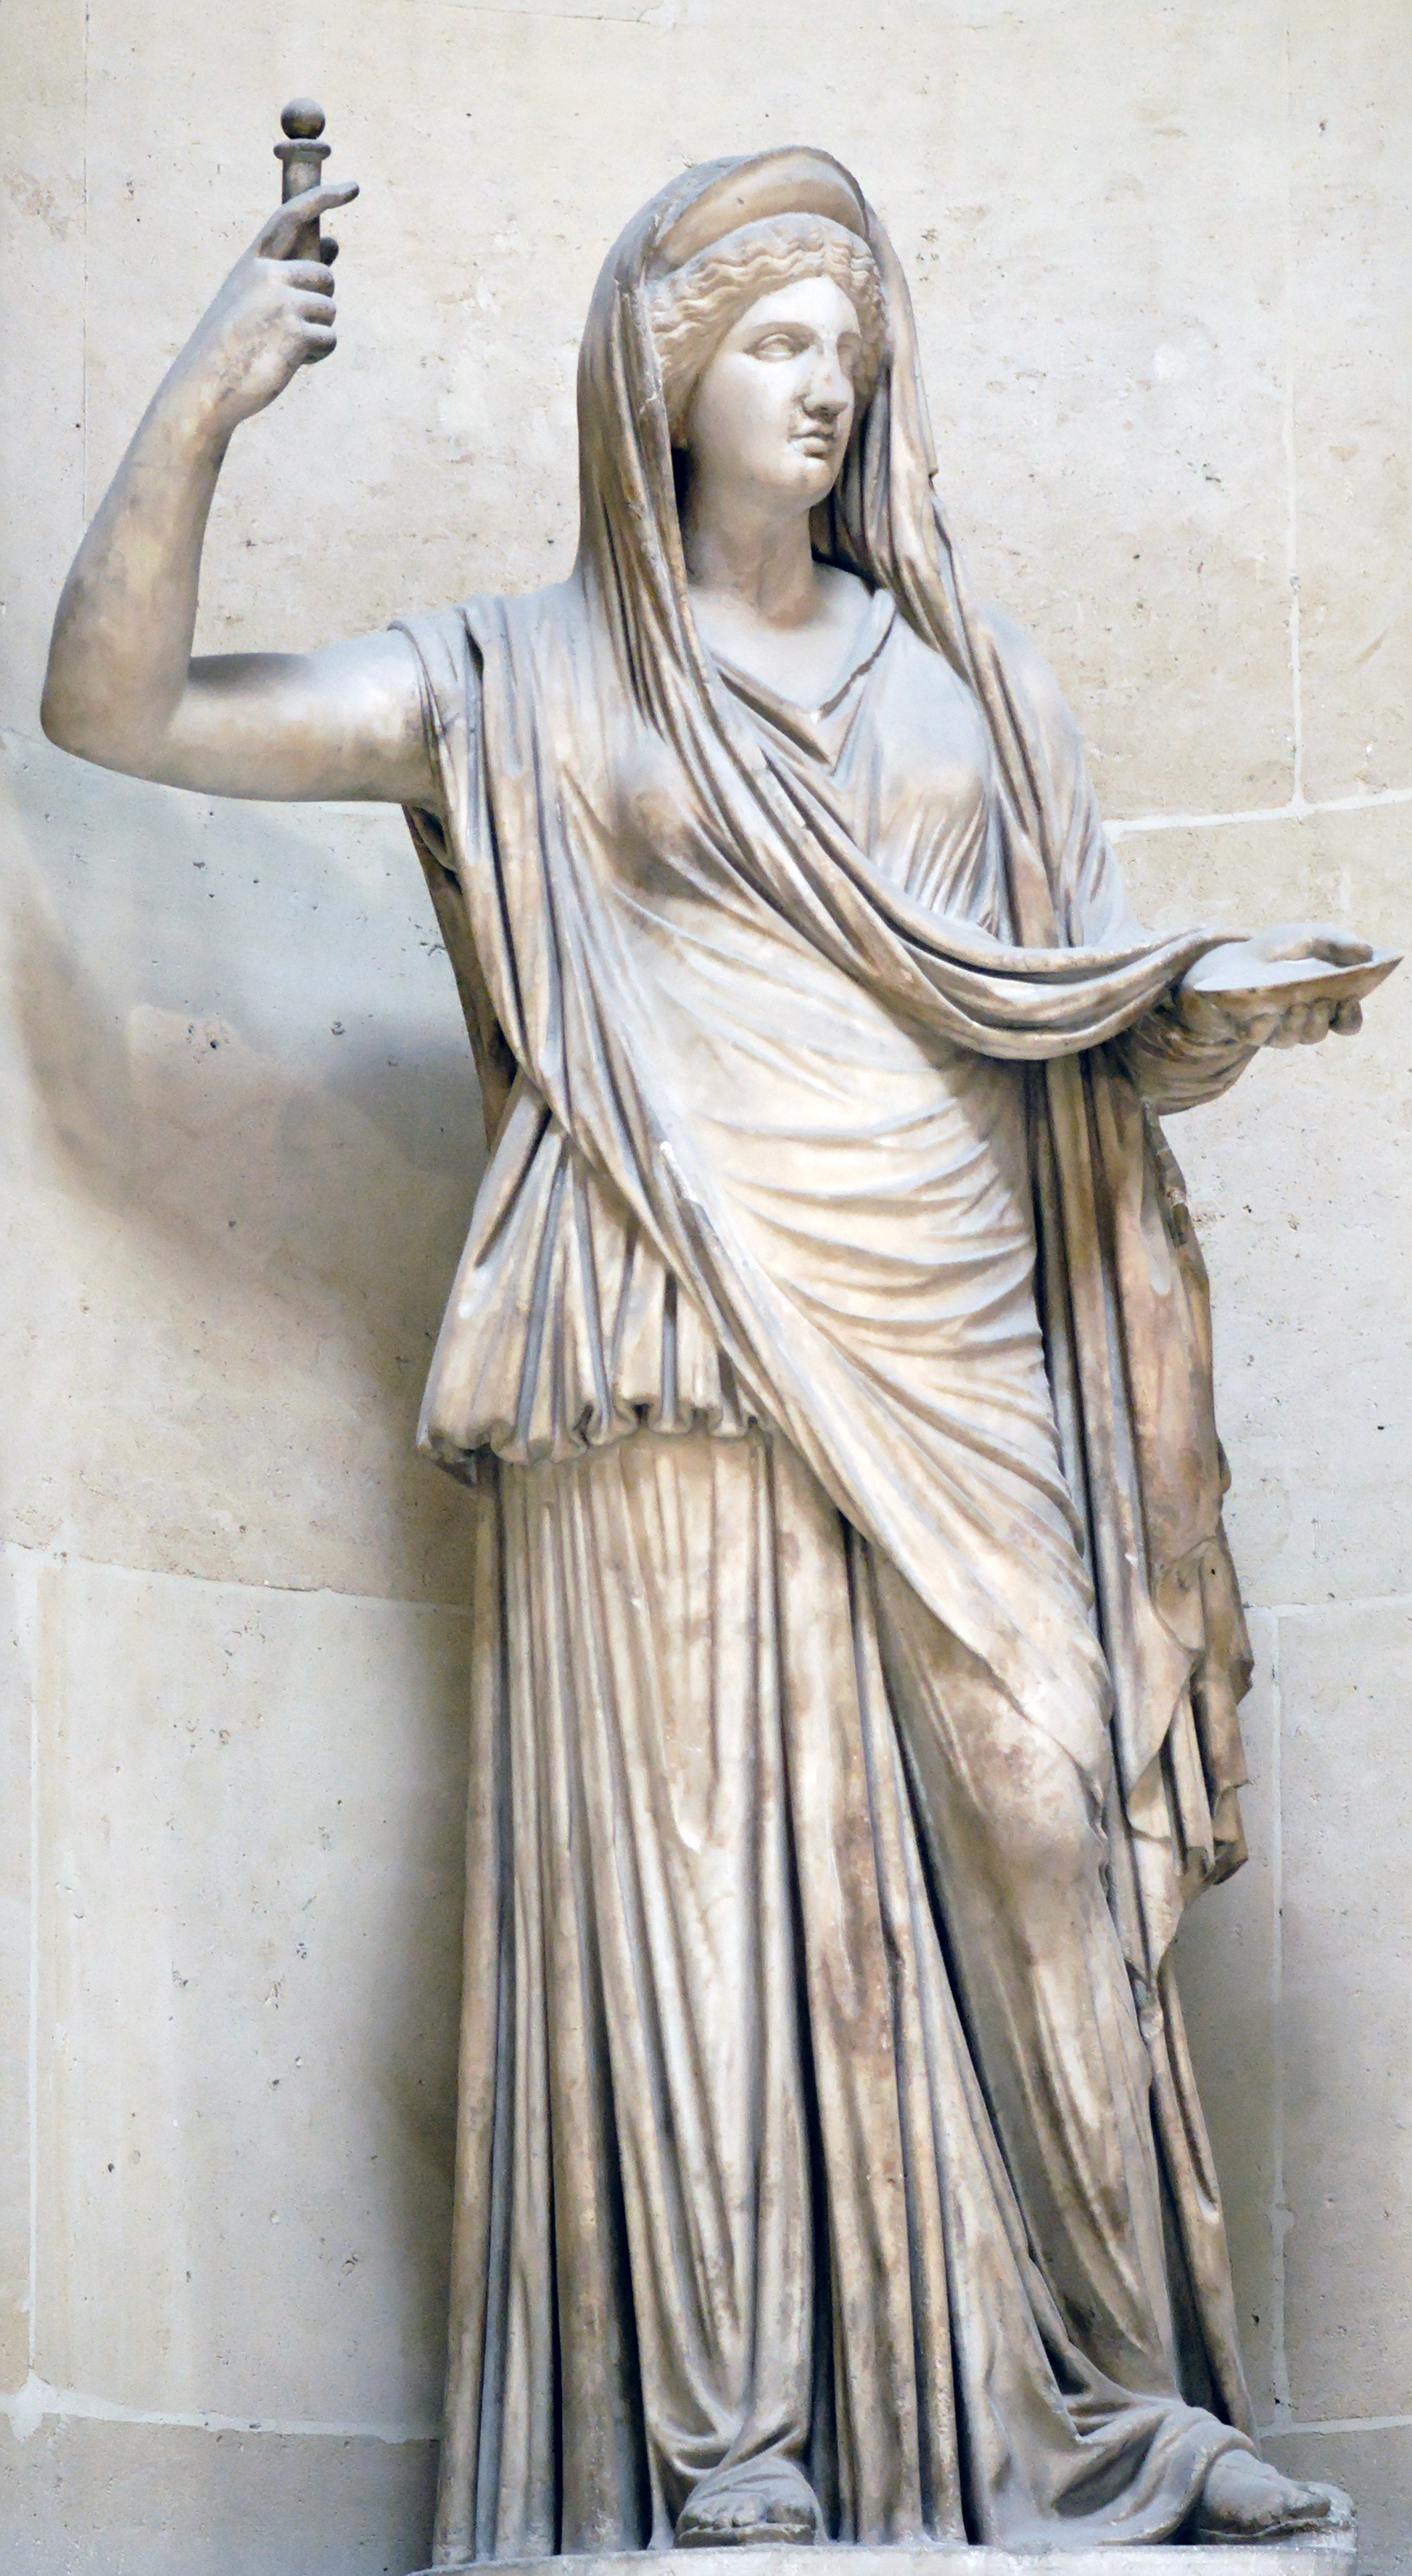 An image of Hera, goddess of marriage.